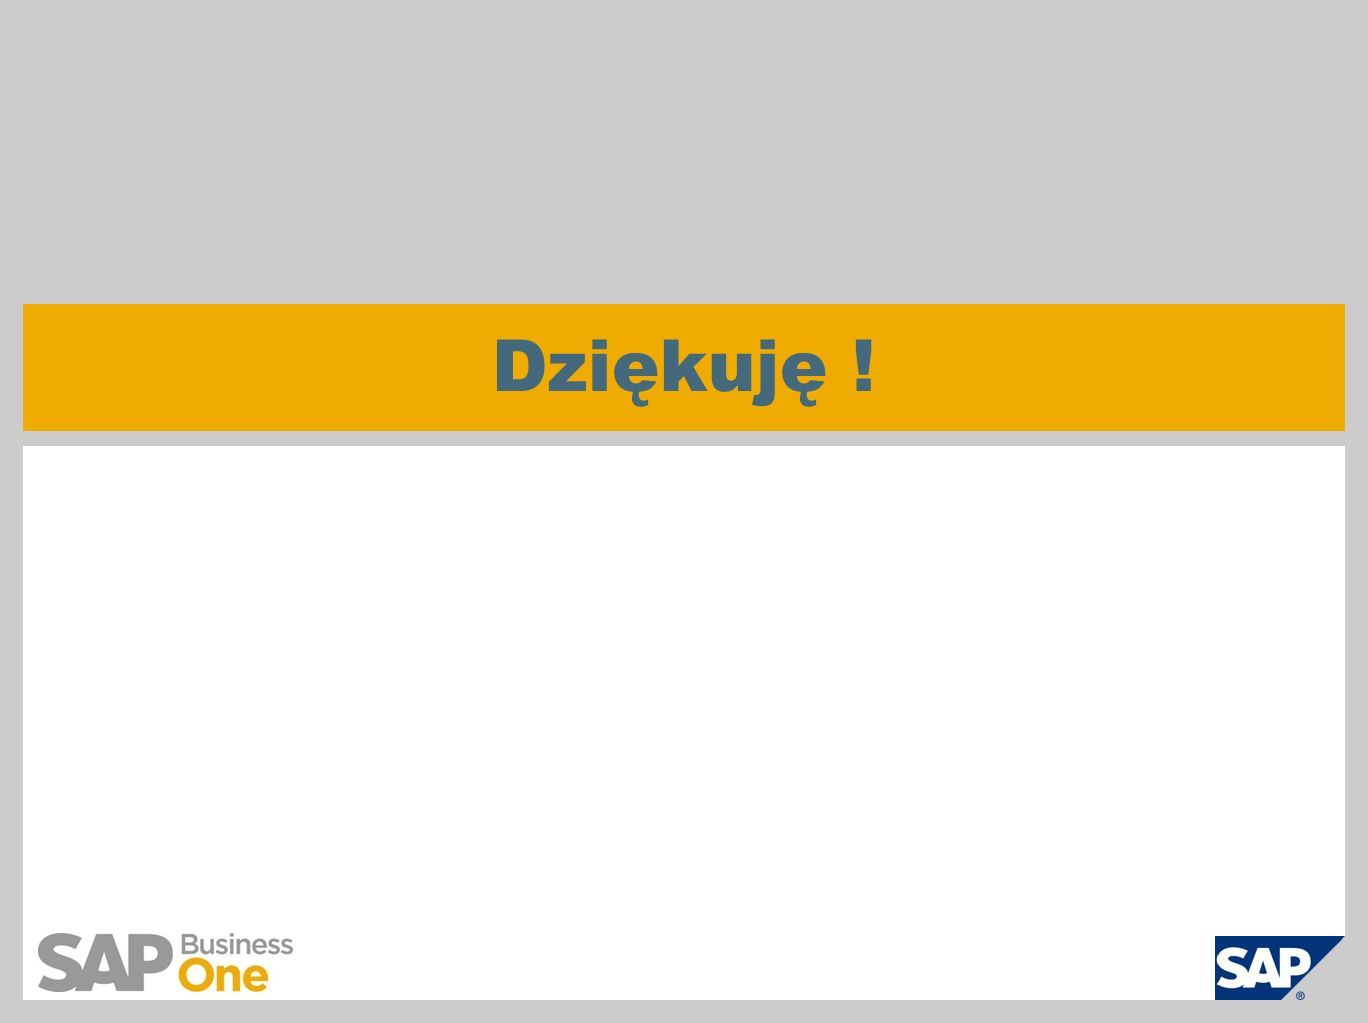  SAP AG 2011, Introduction to SAP Business One 8.8, GTM Rollout Services Page 30 Dziękuję !